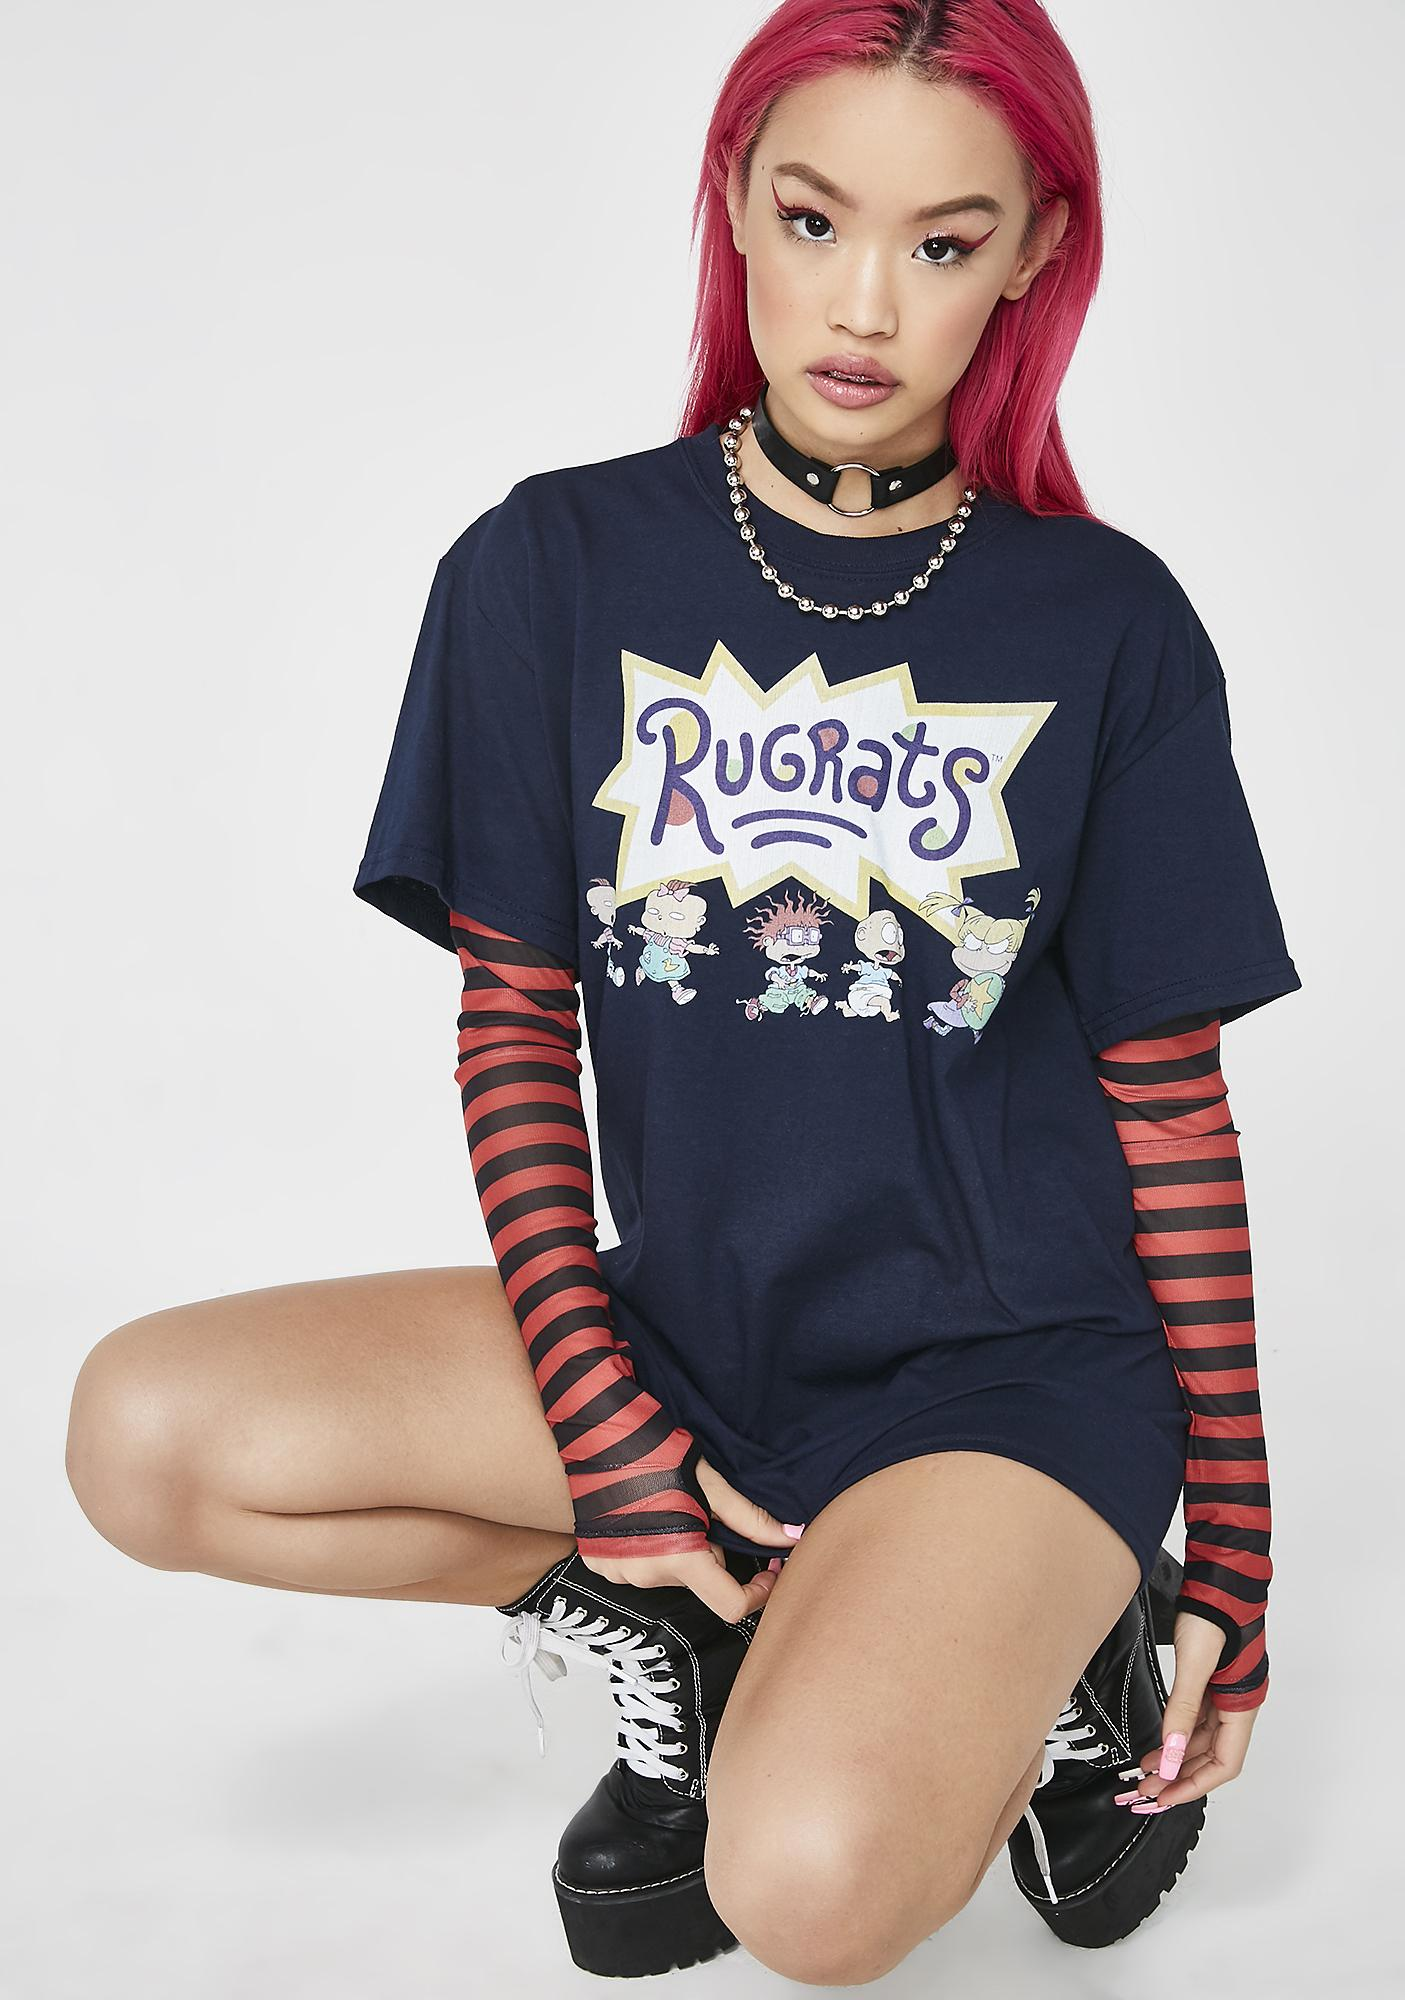 Lil' Rugrats Graphic Tee